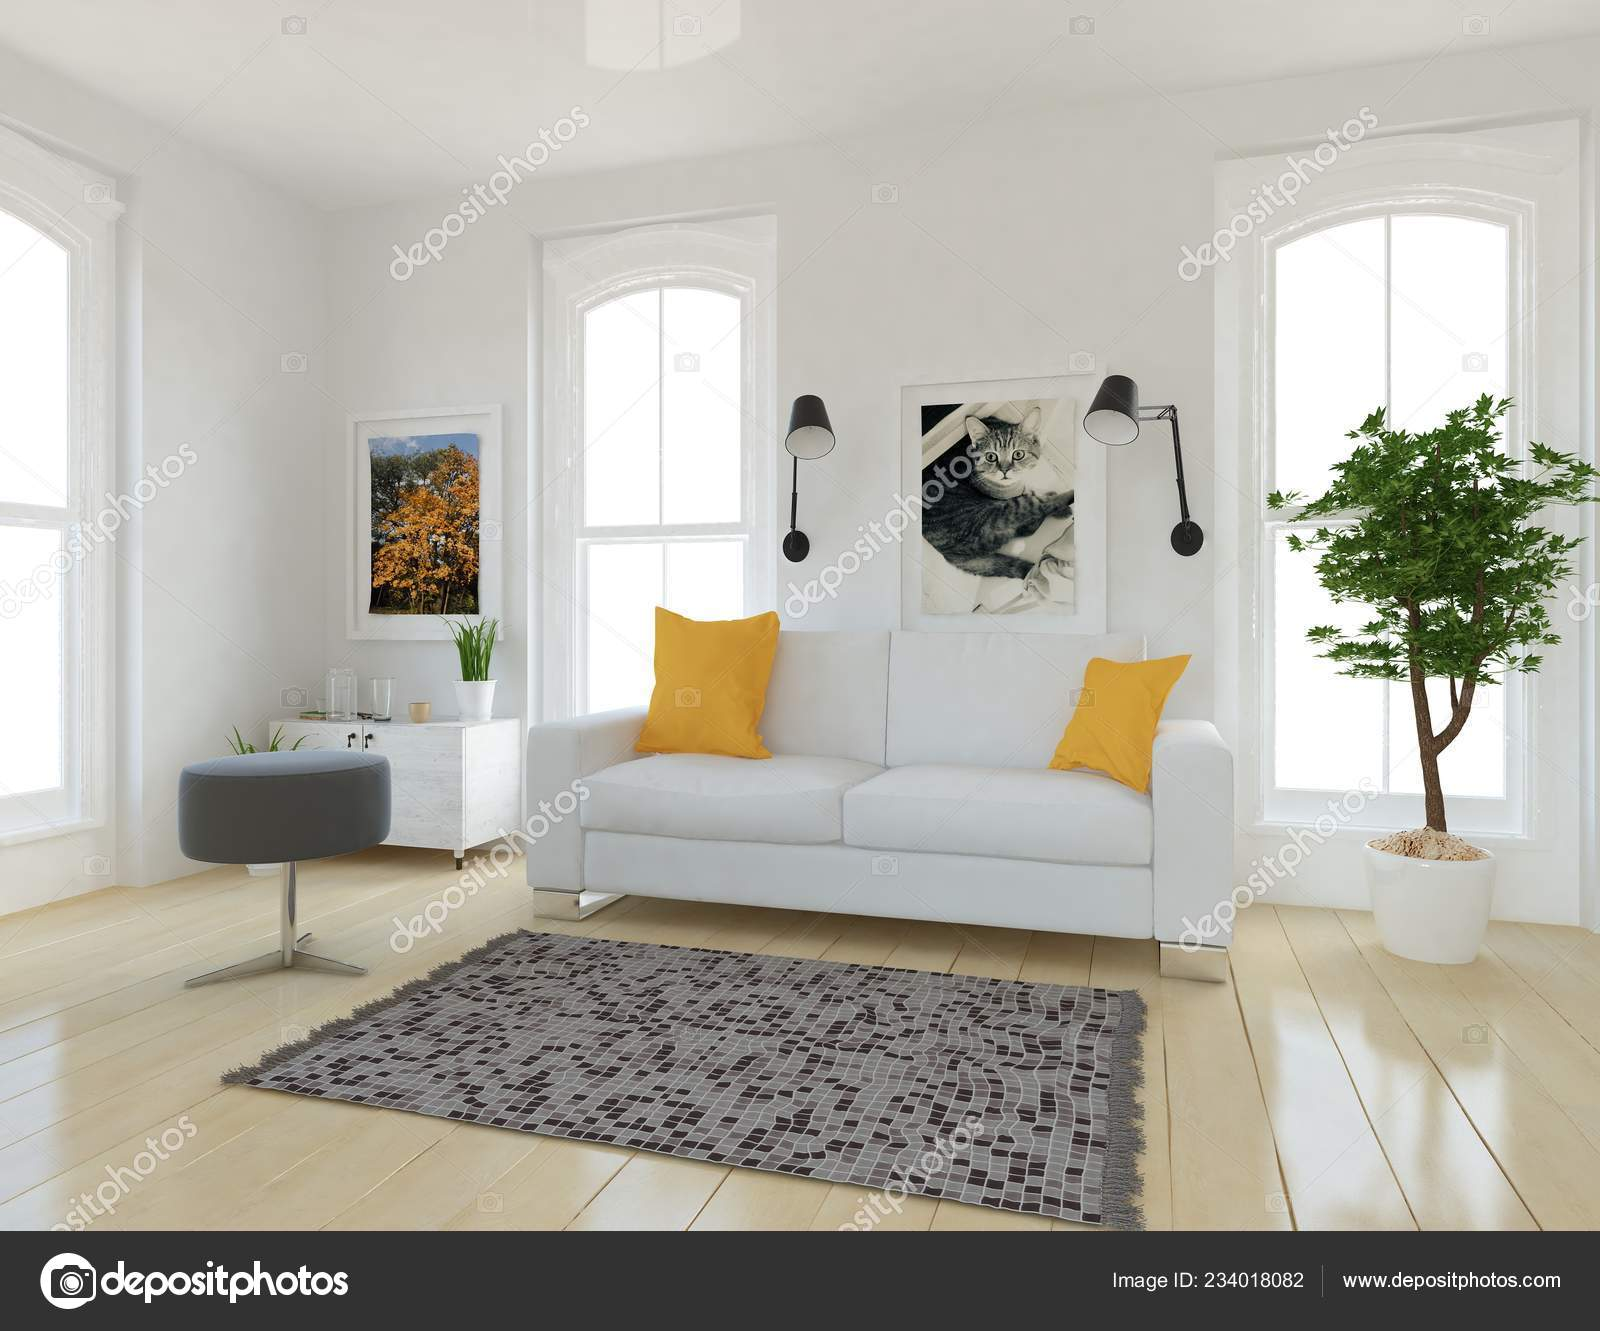 Idea Scandinavian Living Room Interior Sofa Plants Wooden Floor Home Stock Photo Image By C Pavelshinkarev87 Gmail Com 234018082